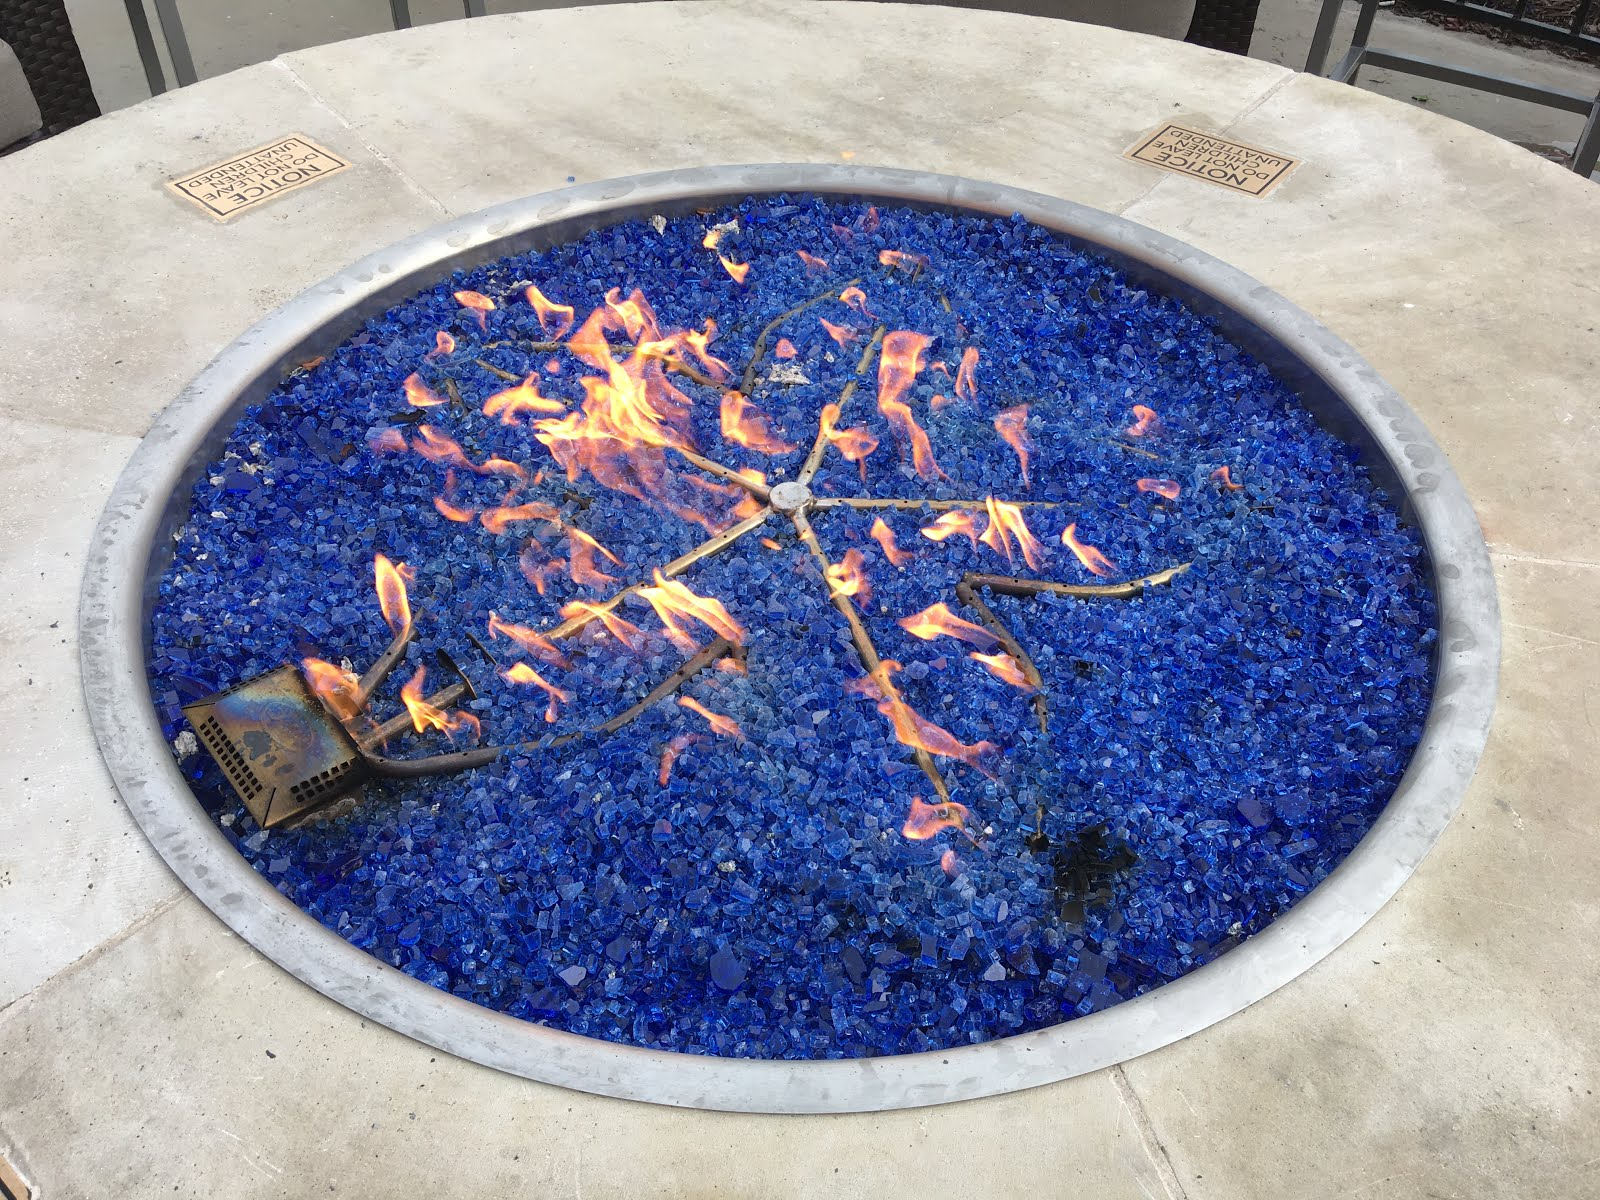 Tumbled blue glass for your firepit